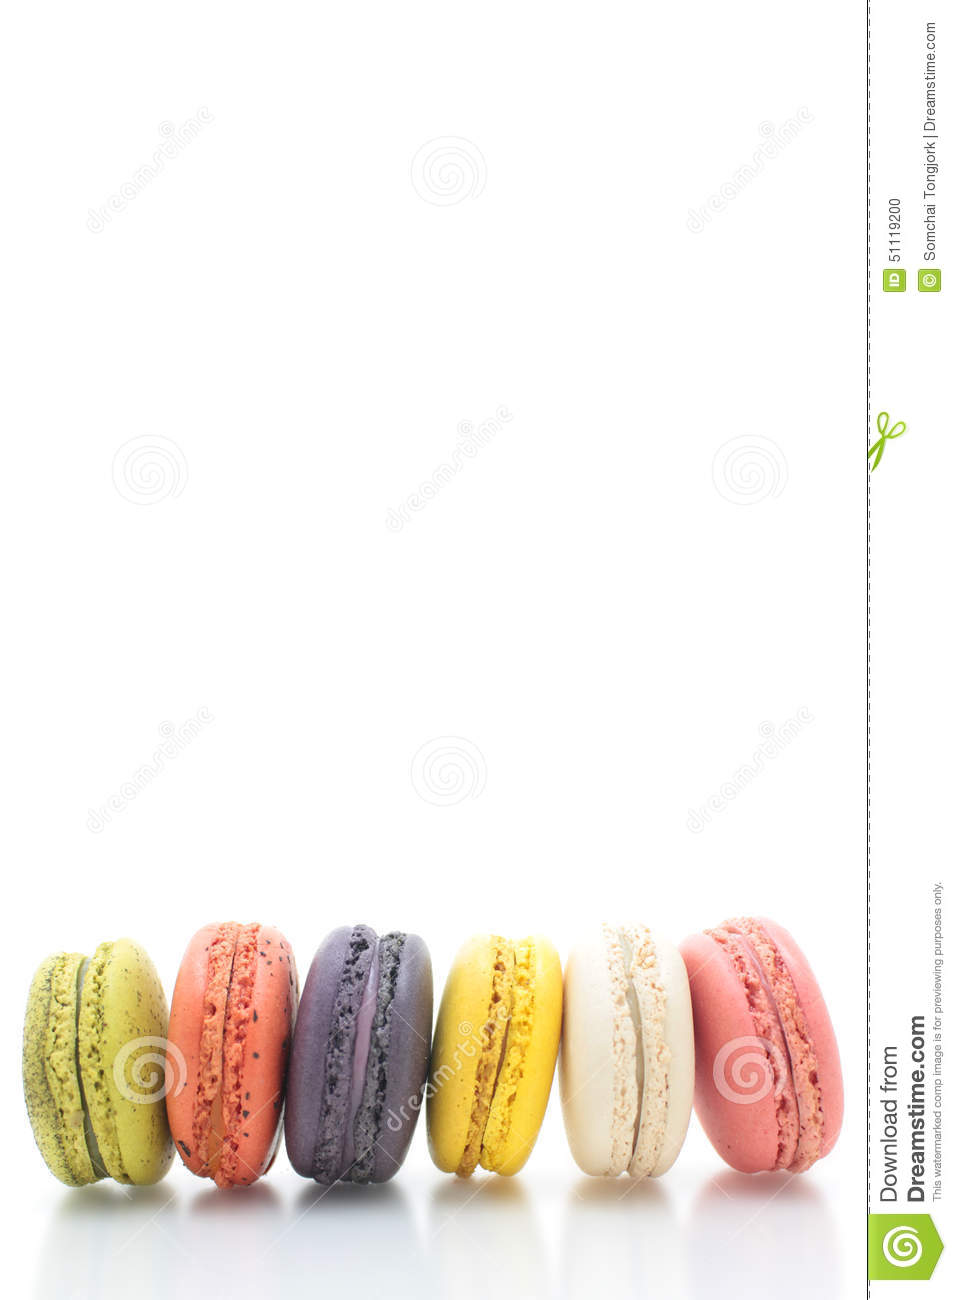 How to Make Violet Macarons How to Make Violet Macarons new photo